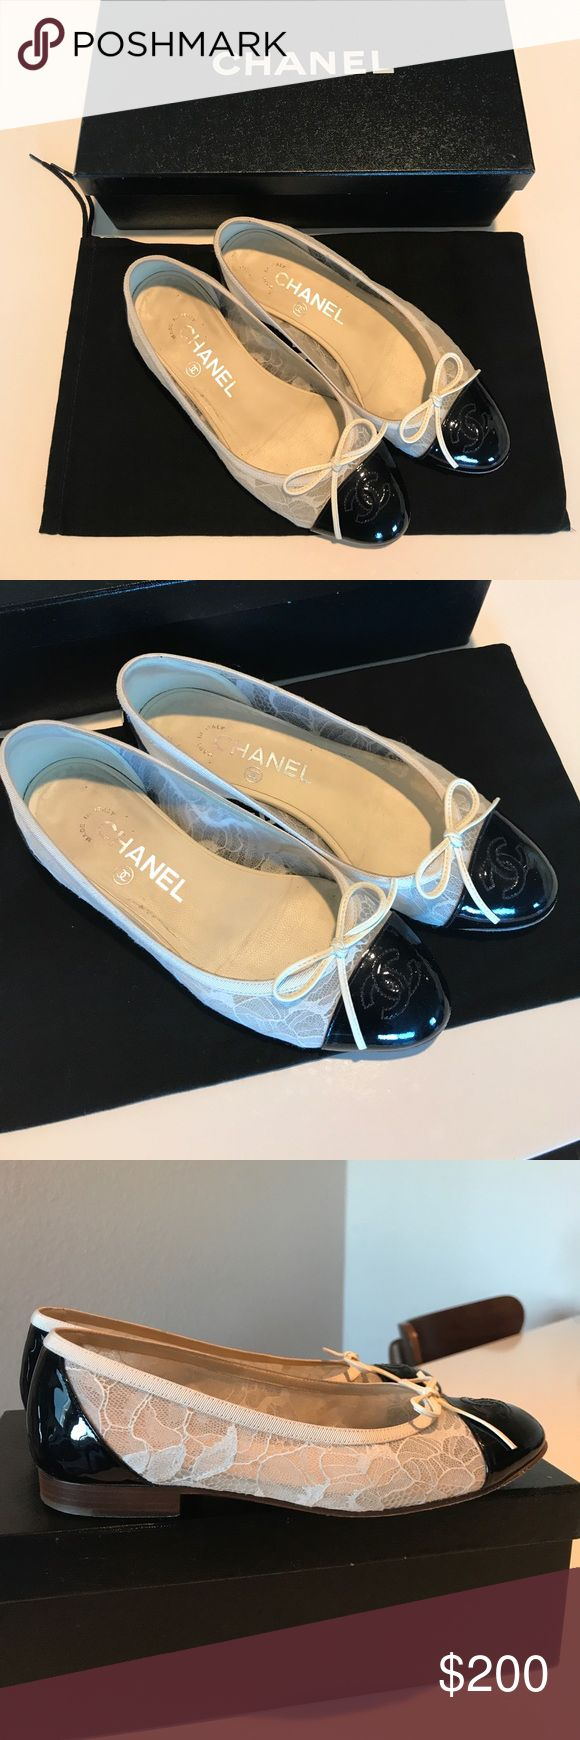 Chanel classic ballerina in white lace/blk ❤️ 100% authentic Chanel classic ballerina in beautiful white lace with patent leather cap toe ❤️ this specific piece runs little small. It fits like true 35. Still in great condition! I trashed the original box for this pair and I can ship it with my other Chanel box ( seen in the 1st picture ) which belongs to my other Chanel shoes... 👍🏻 ******** NO TRADE PLEASE & ALL SALES ARE FINAL******* Happy shopping 😉 CHANEL Shoes Flats & Loafers